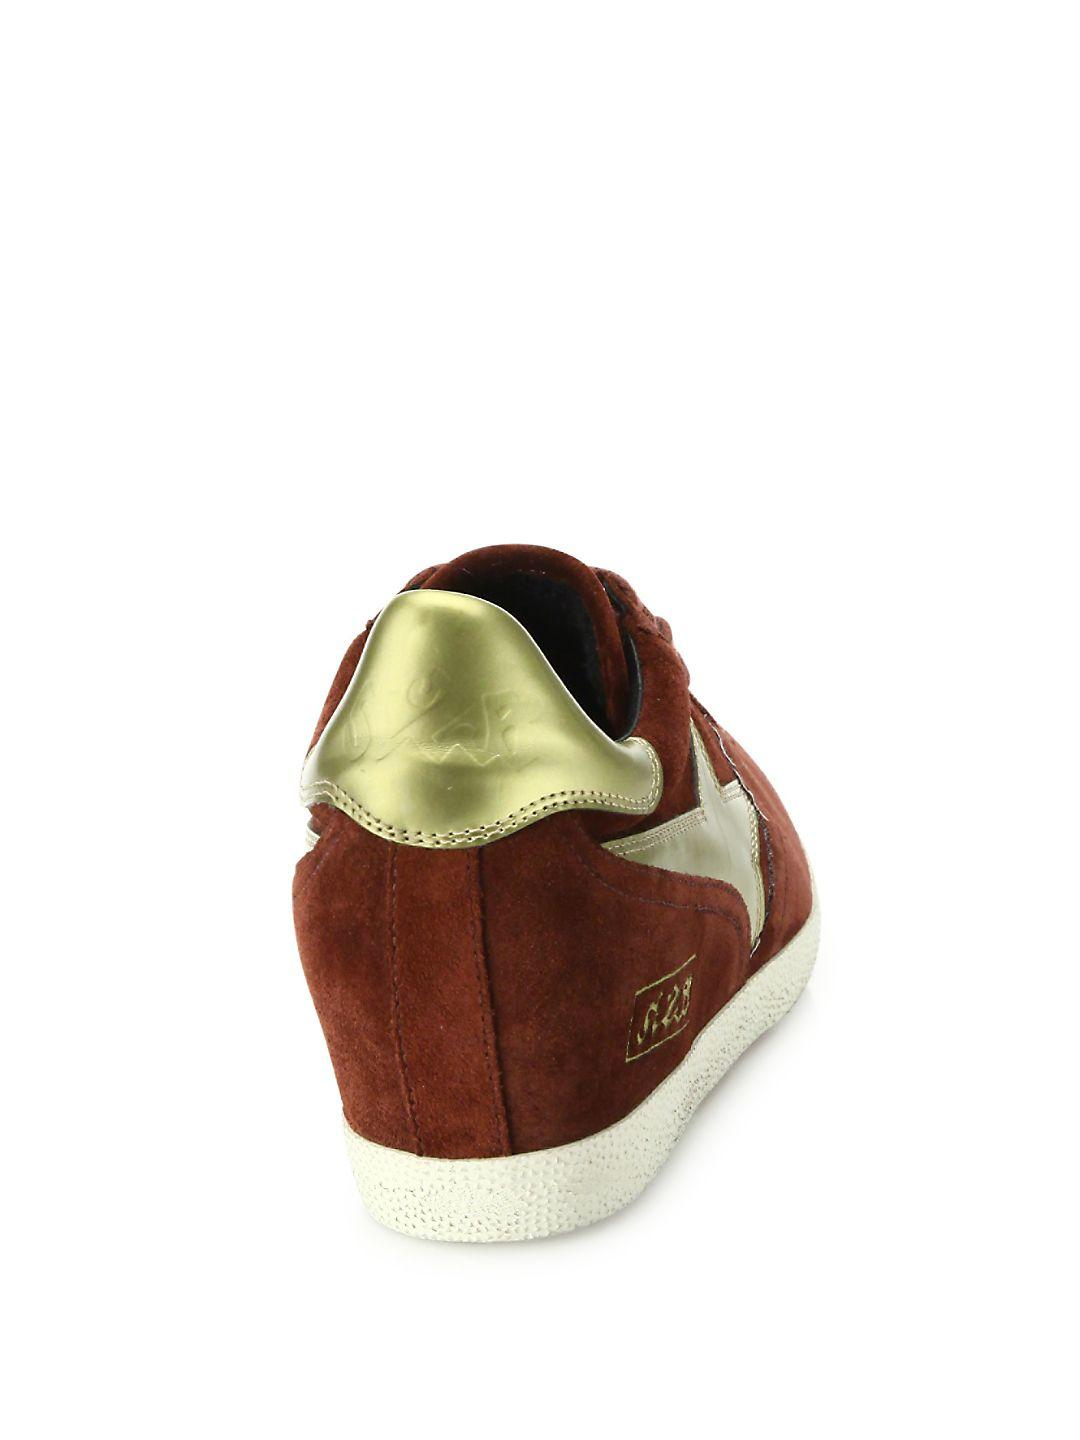 Ash Guepard Bis Suede & Faux Metallic Leather Wedge Sneakers in Red